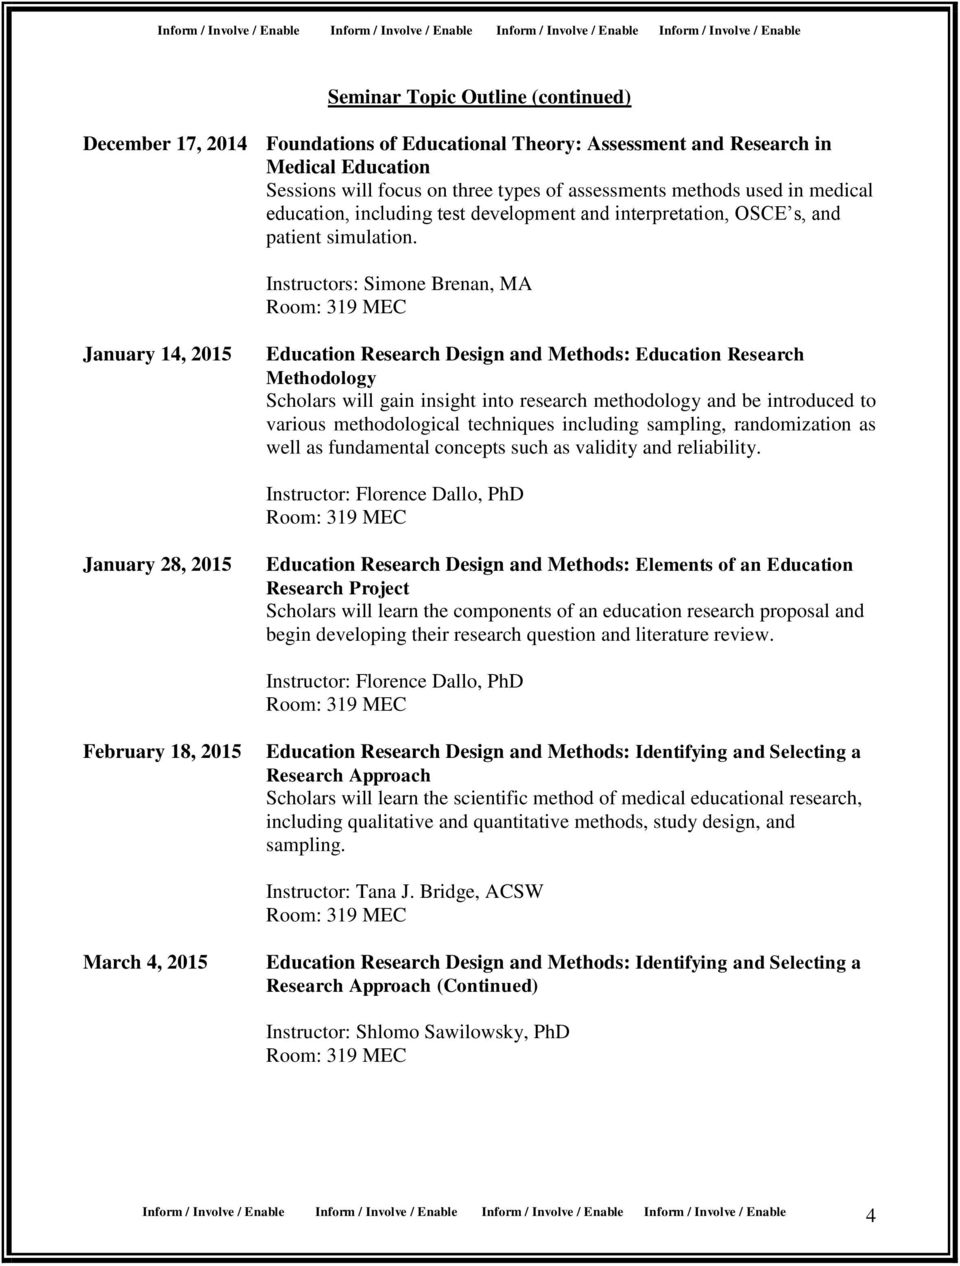 Instructors: Simone Brenan, MA January 14, 2015 Education Research Design and Methods: Education Research Methodology Scholars will gain insight into research methodology and be introduced to various